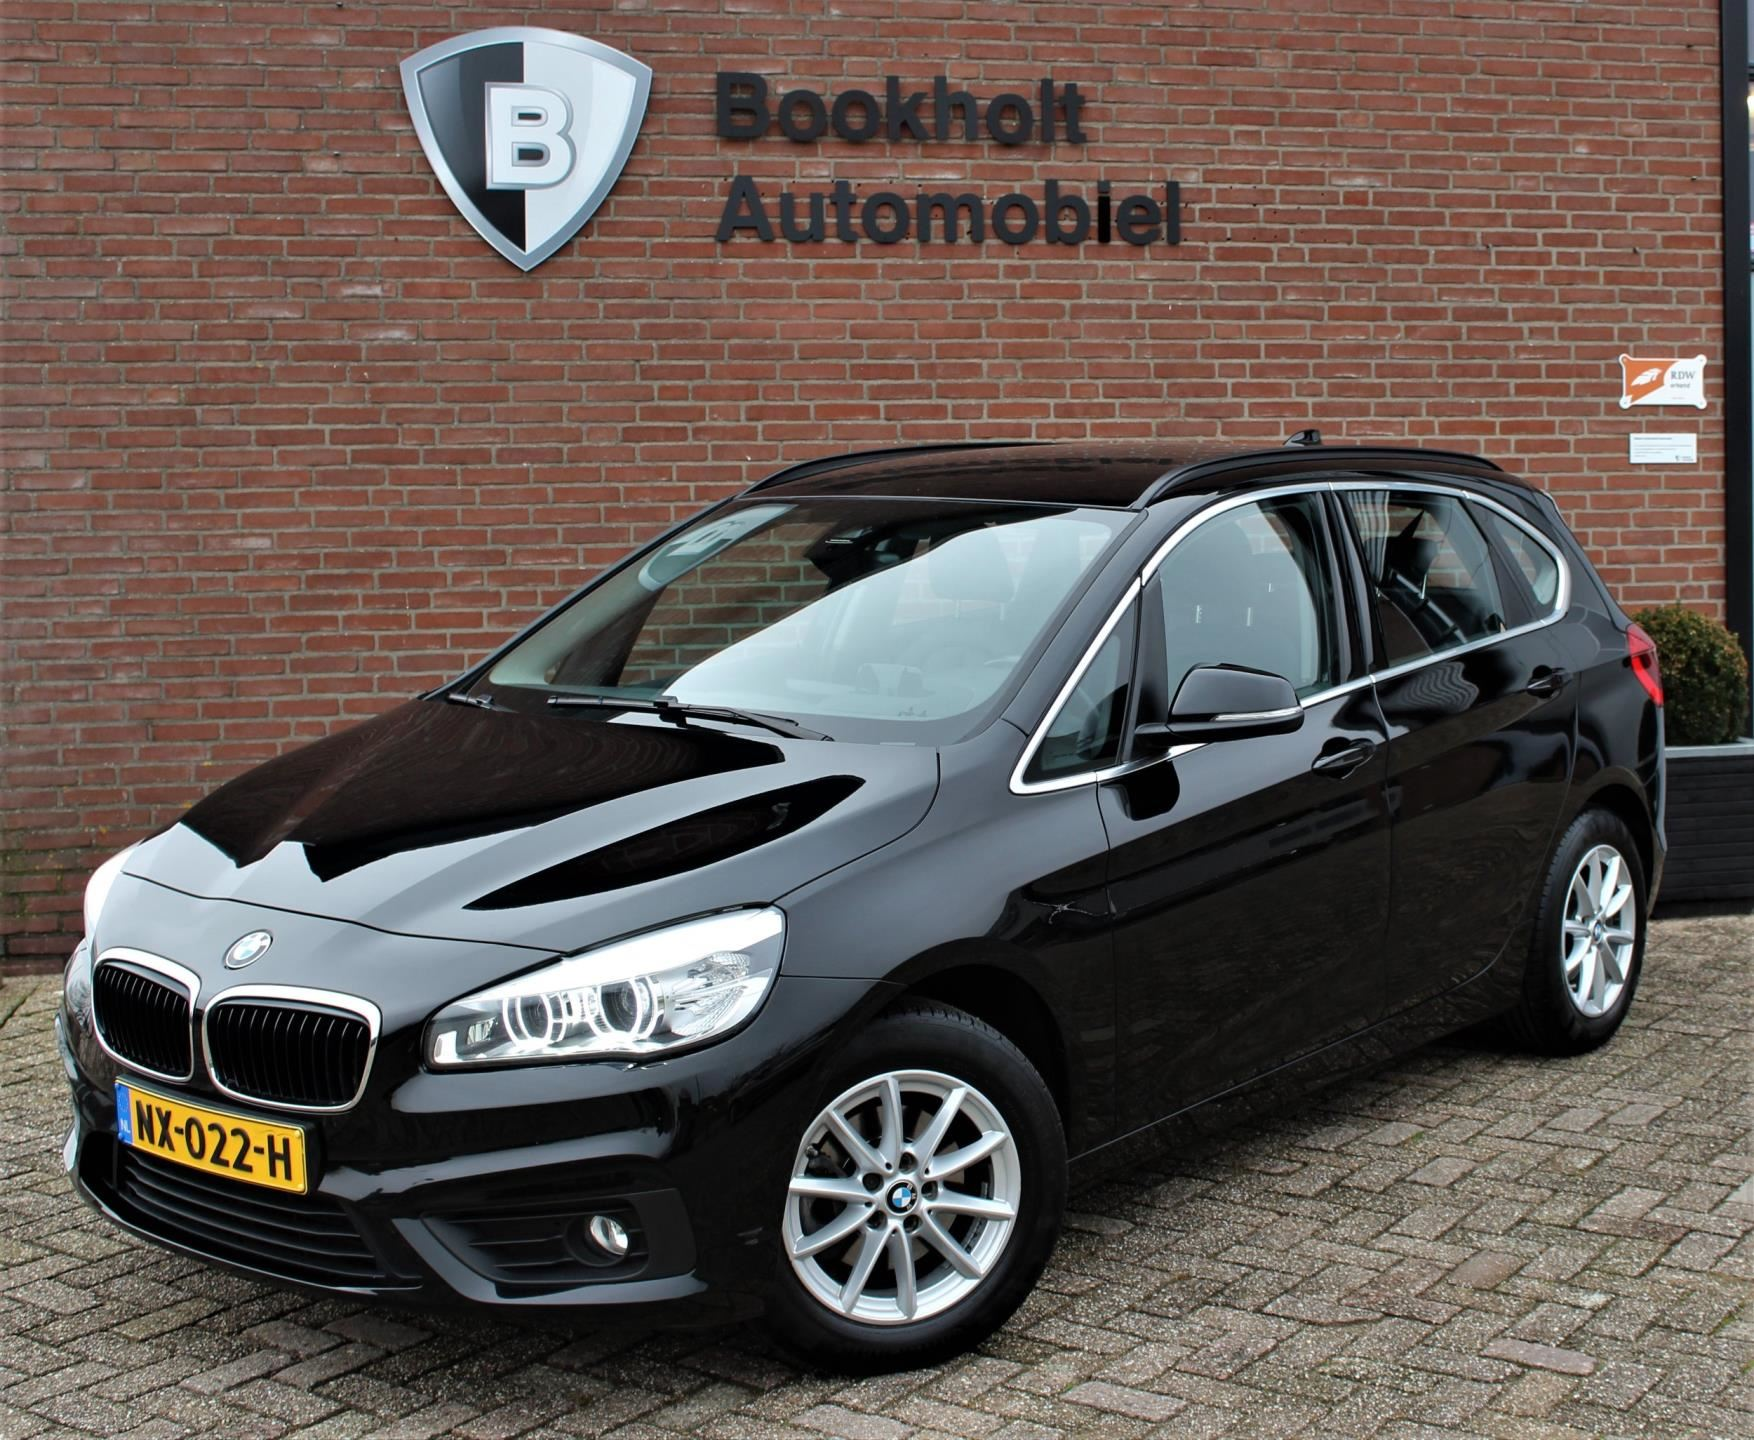 BMW 2-serie Active Tourer occasion - Bookholt Automobiel